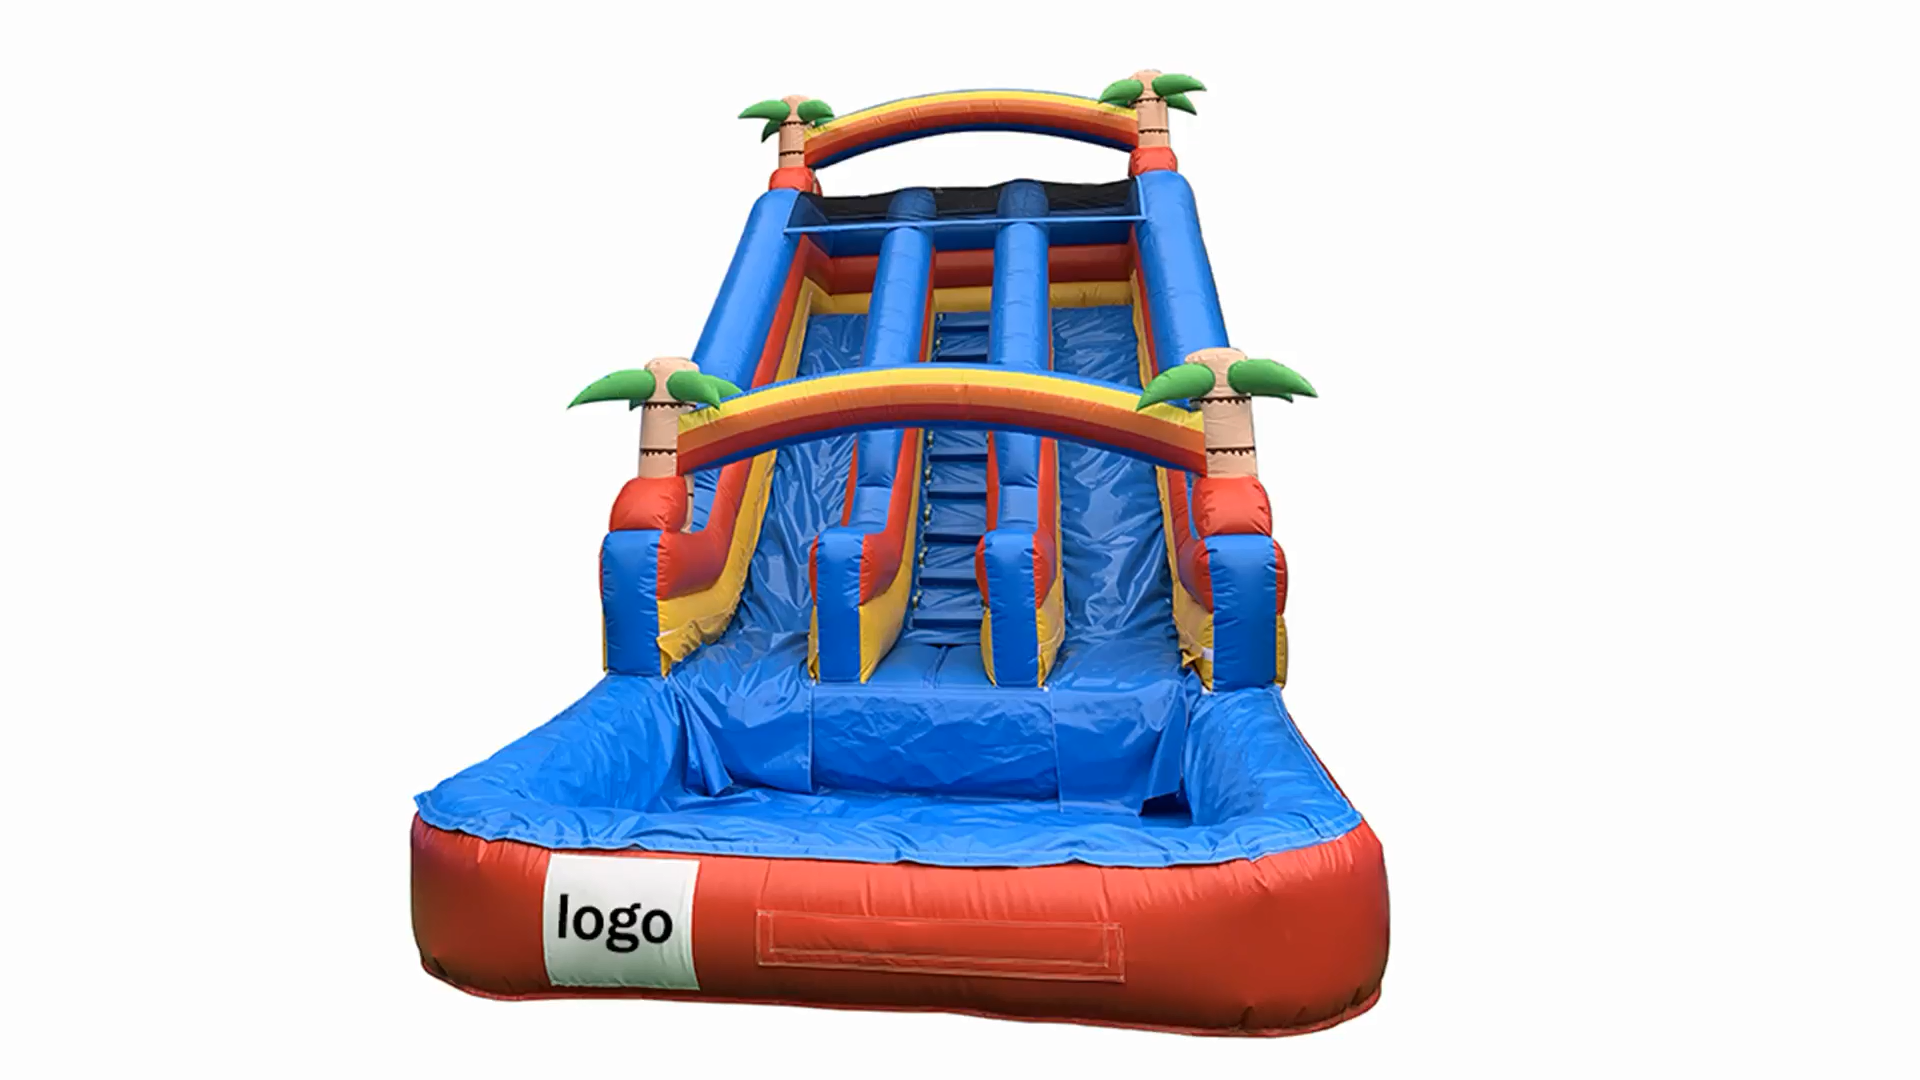 Commercial outdoor inflatable water slides kids for inflatable theme park